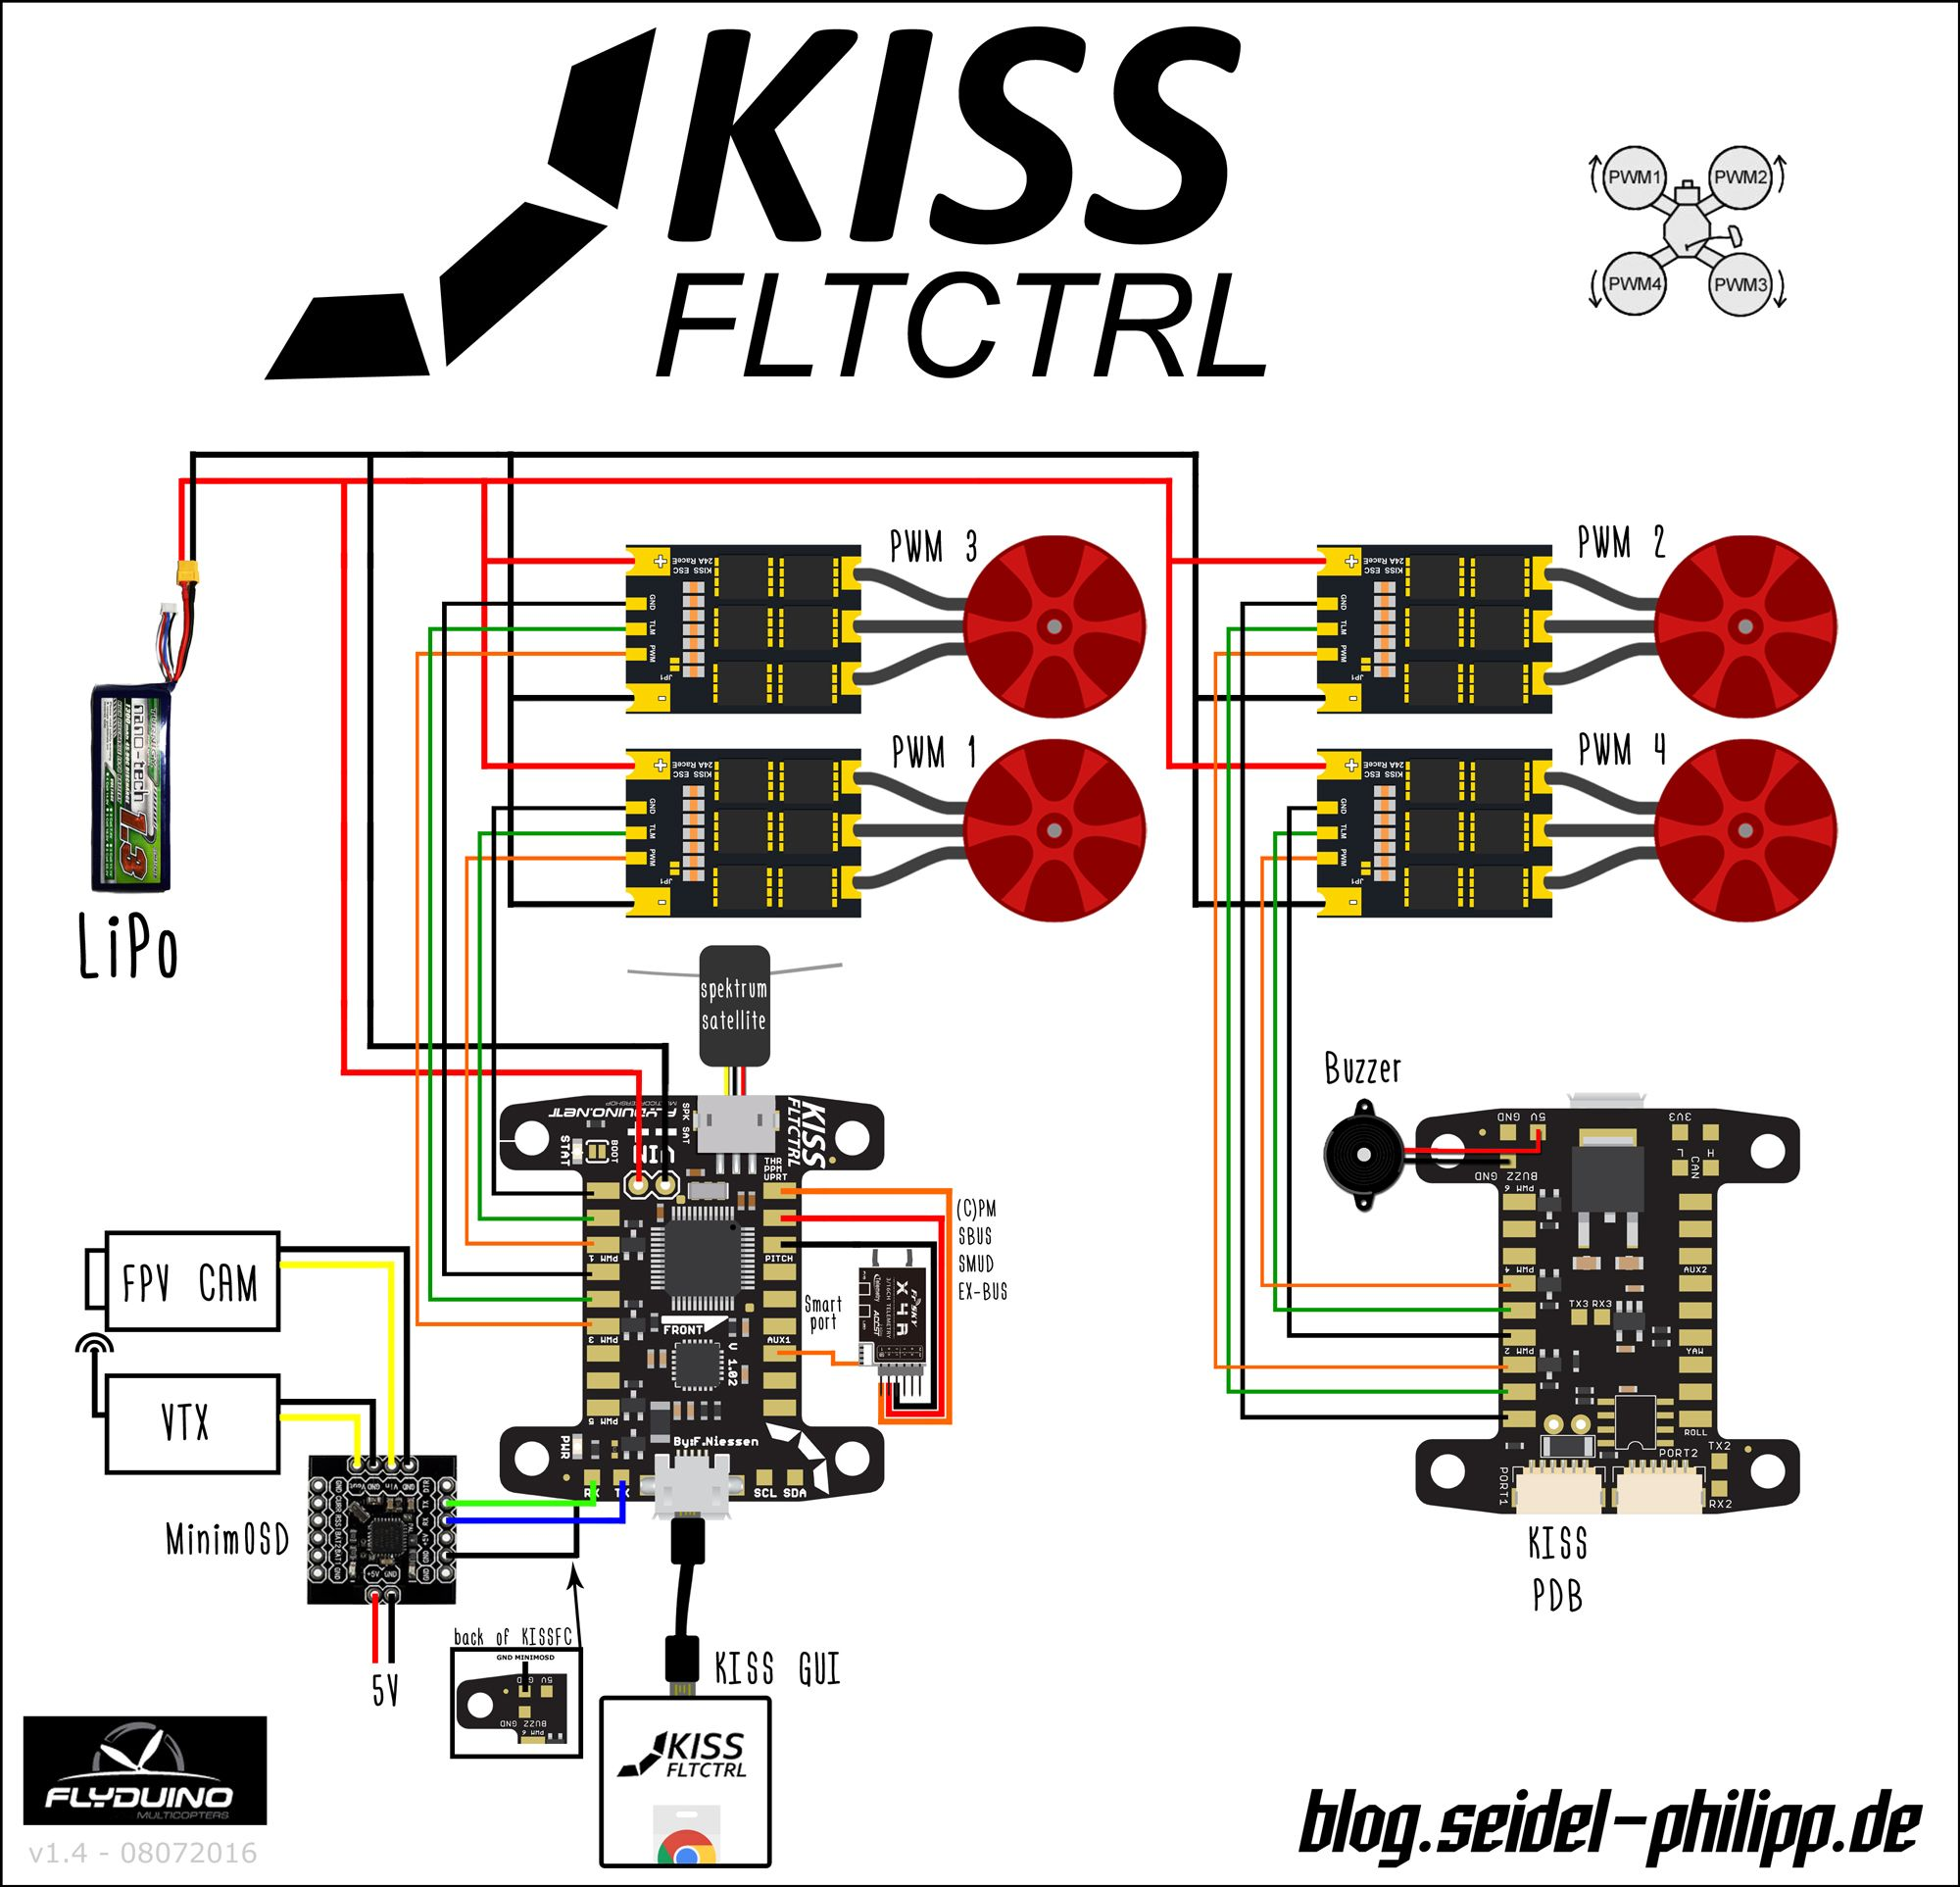 KISS FC - Connection diagram